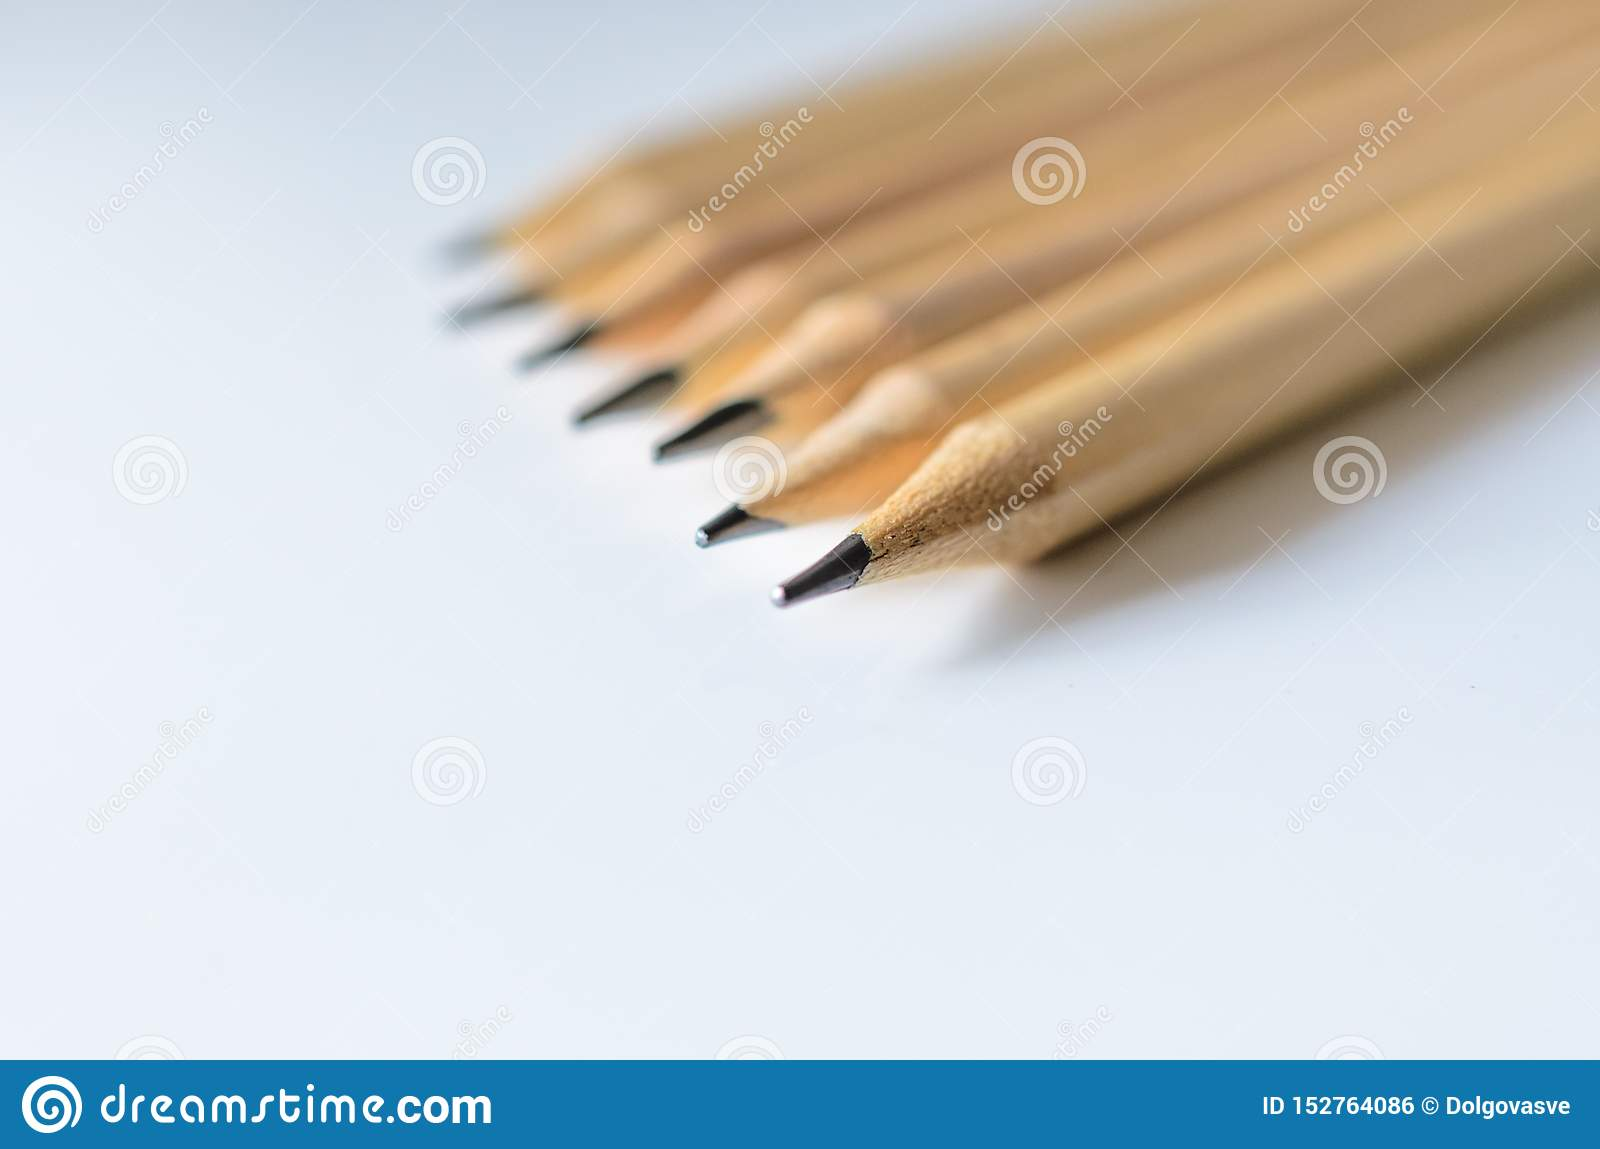 Wooden pencils for sketching and drawing closeup